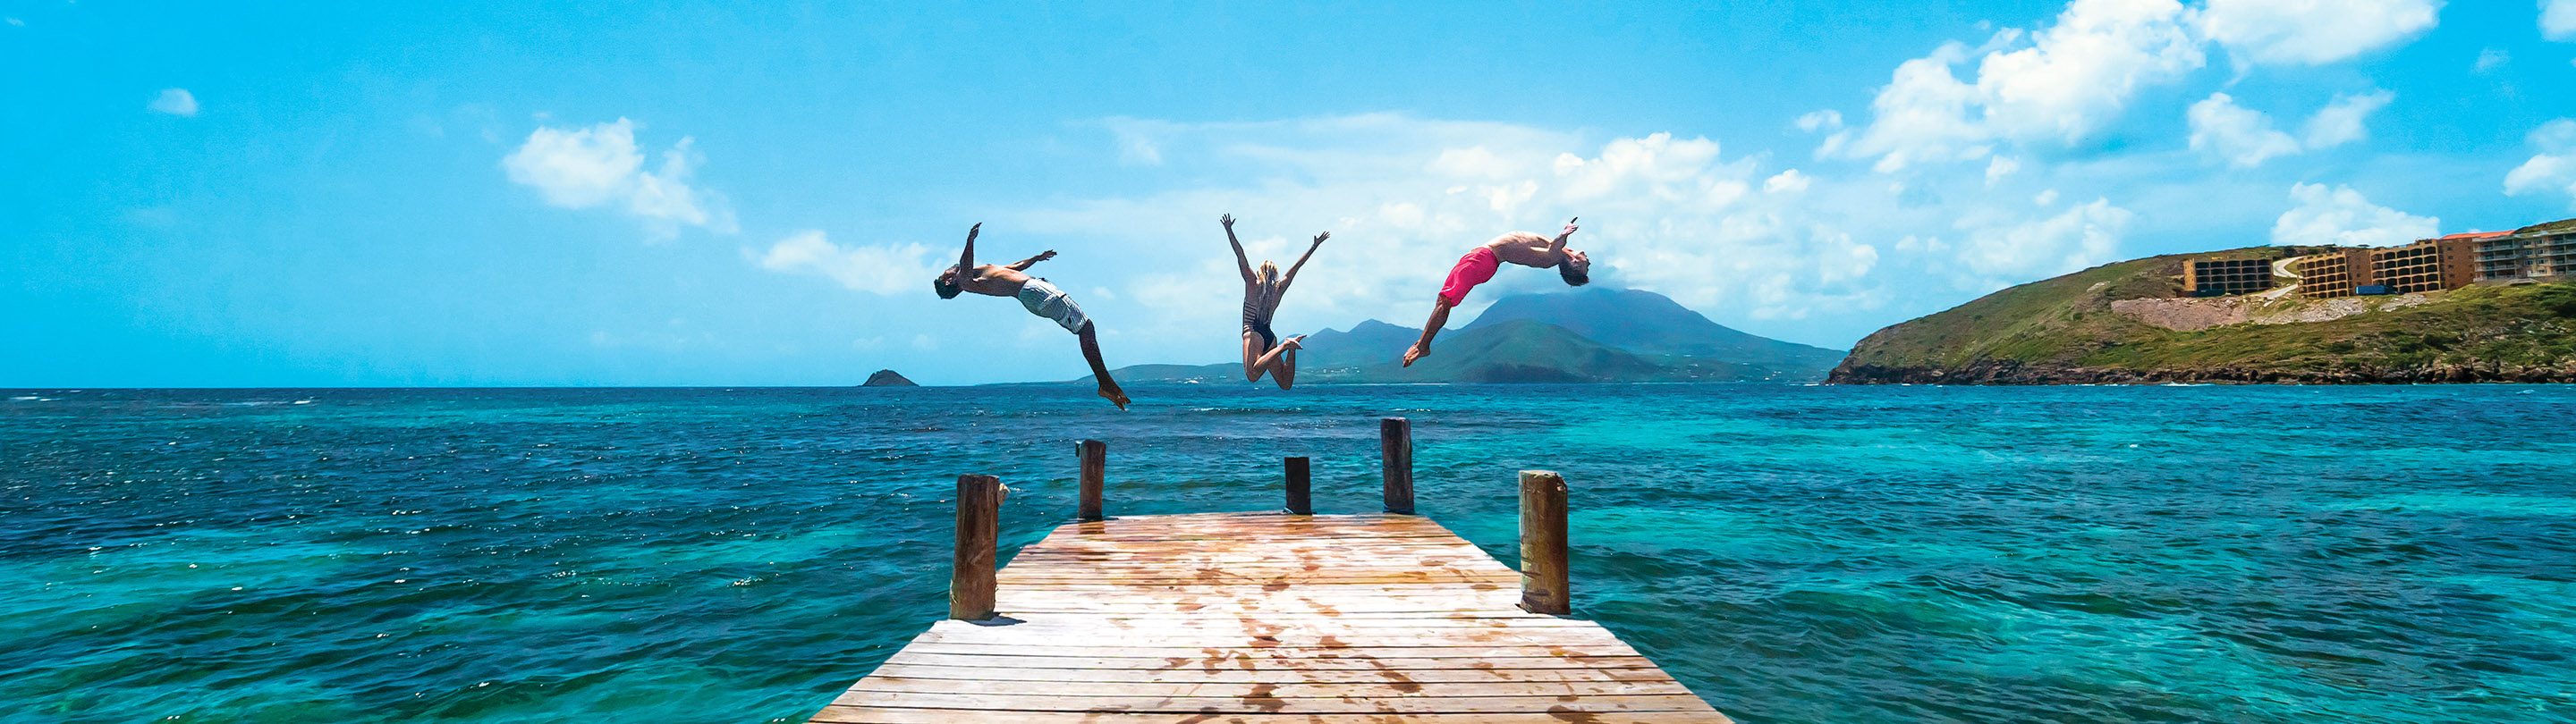 St. Kitts Spring break Friends Jumping Bridge Ocean